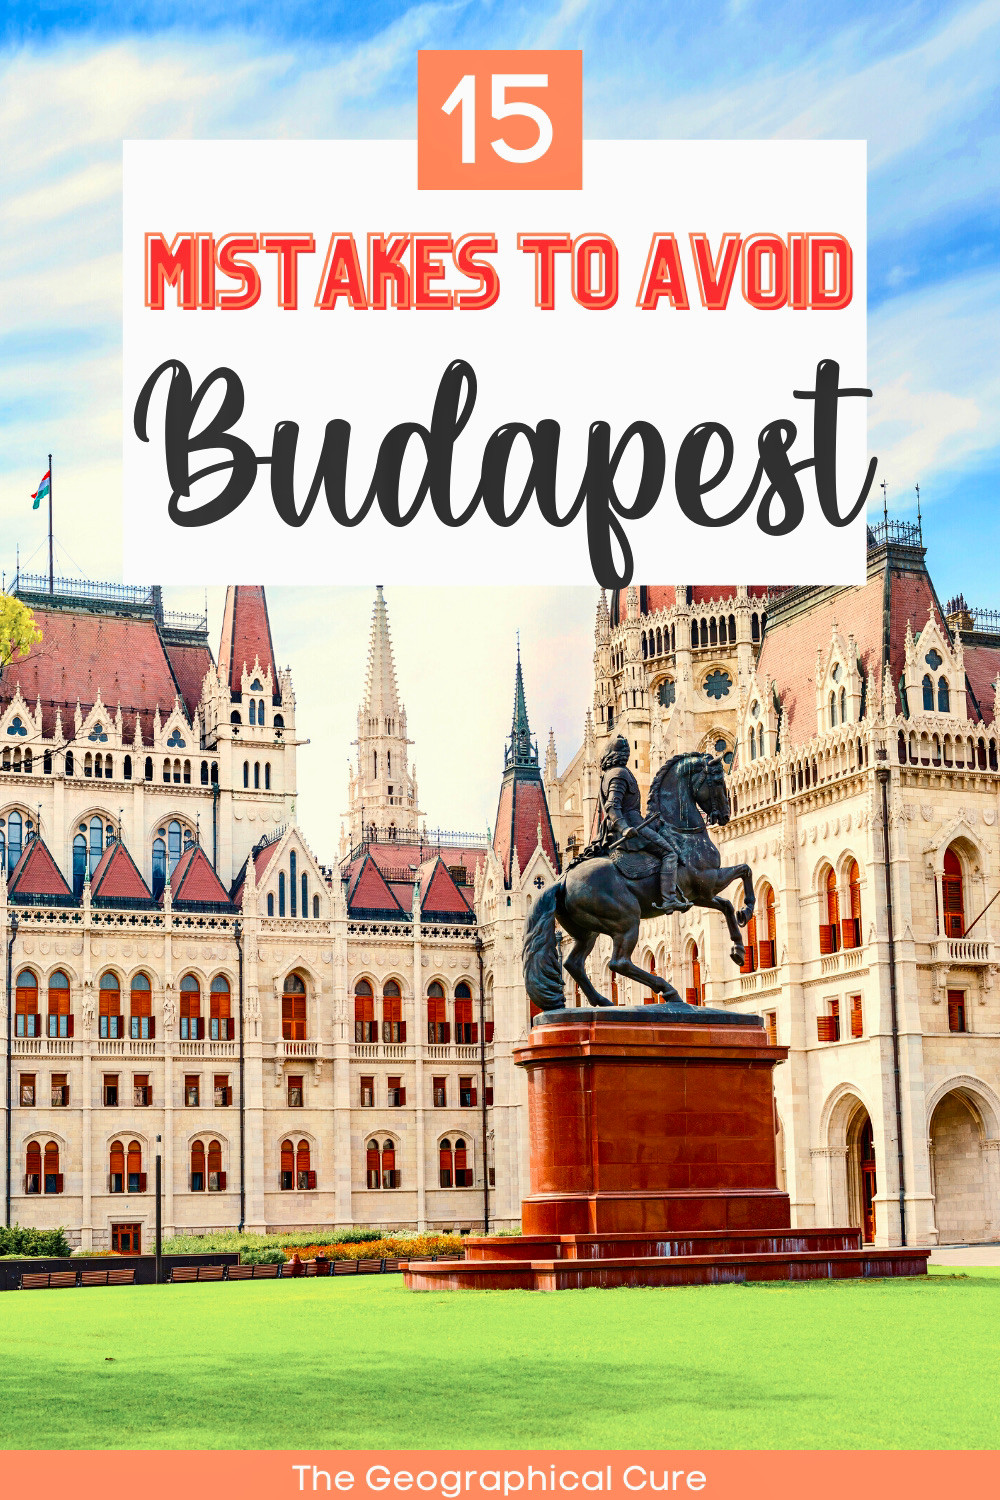 must know tips for Budapest to avoid mistakes and have an efficient visit